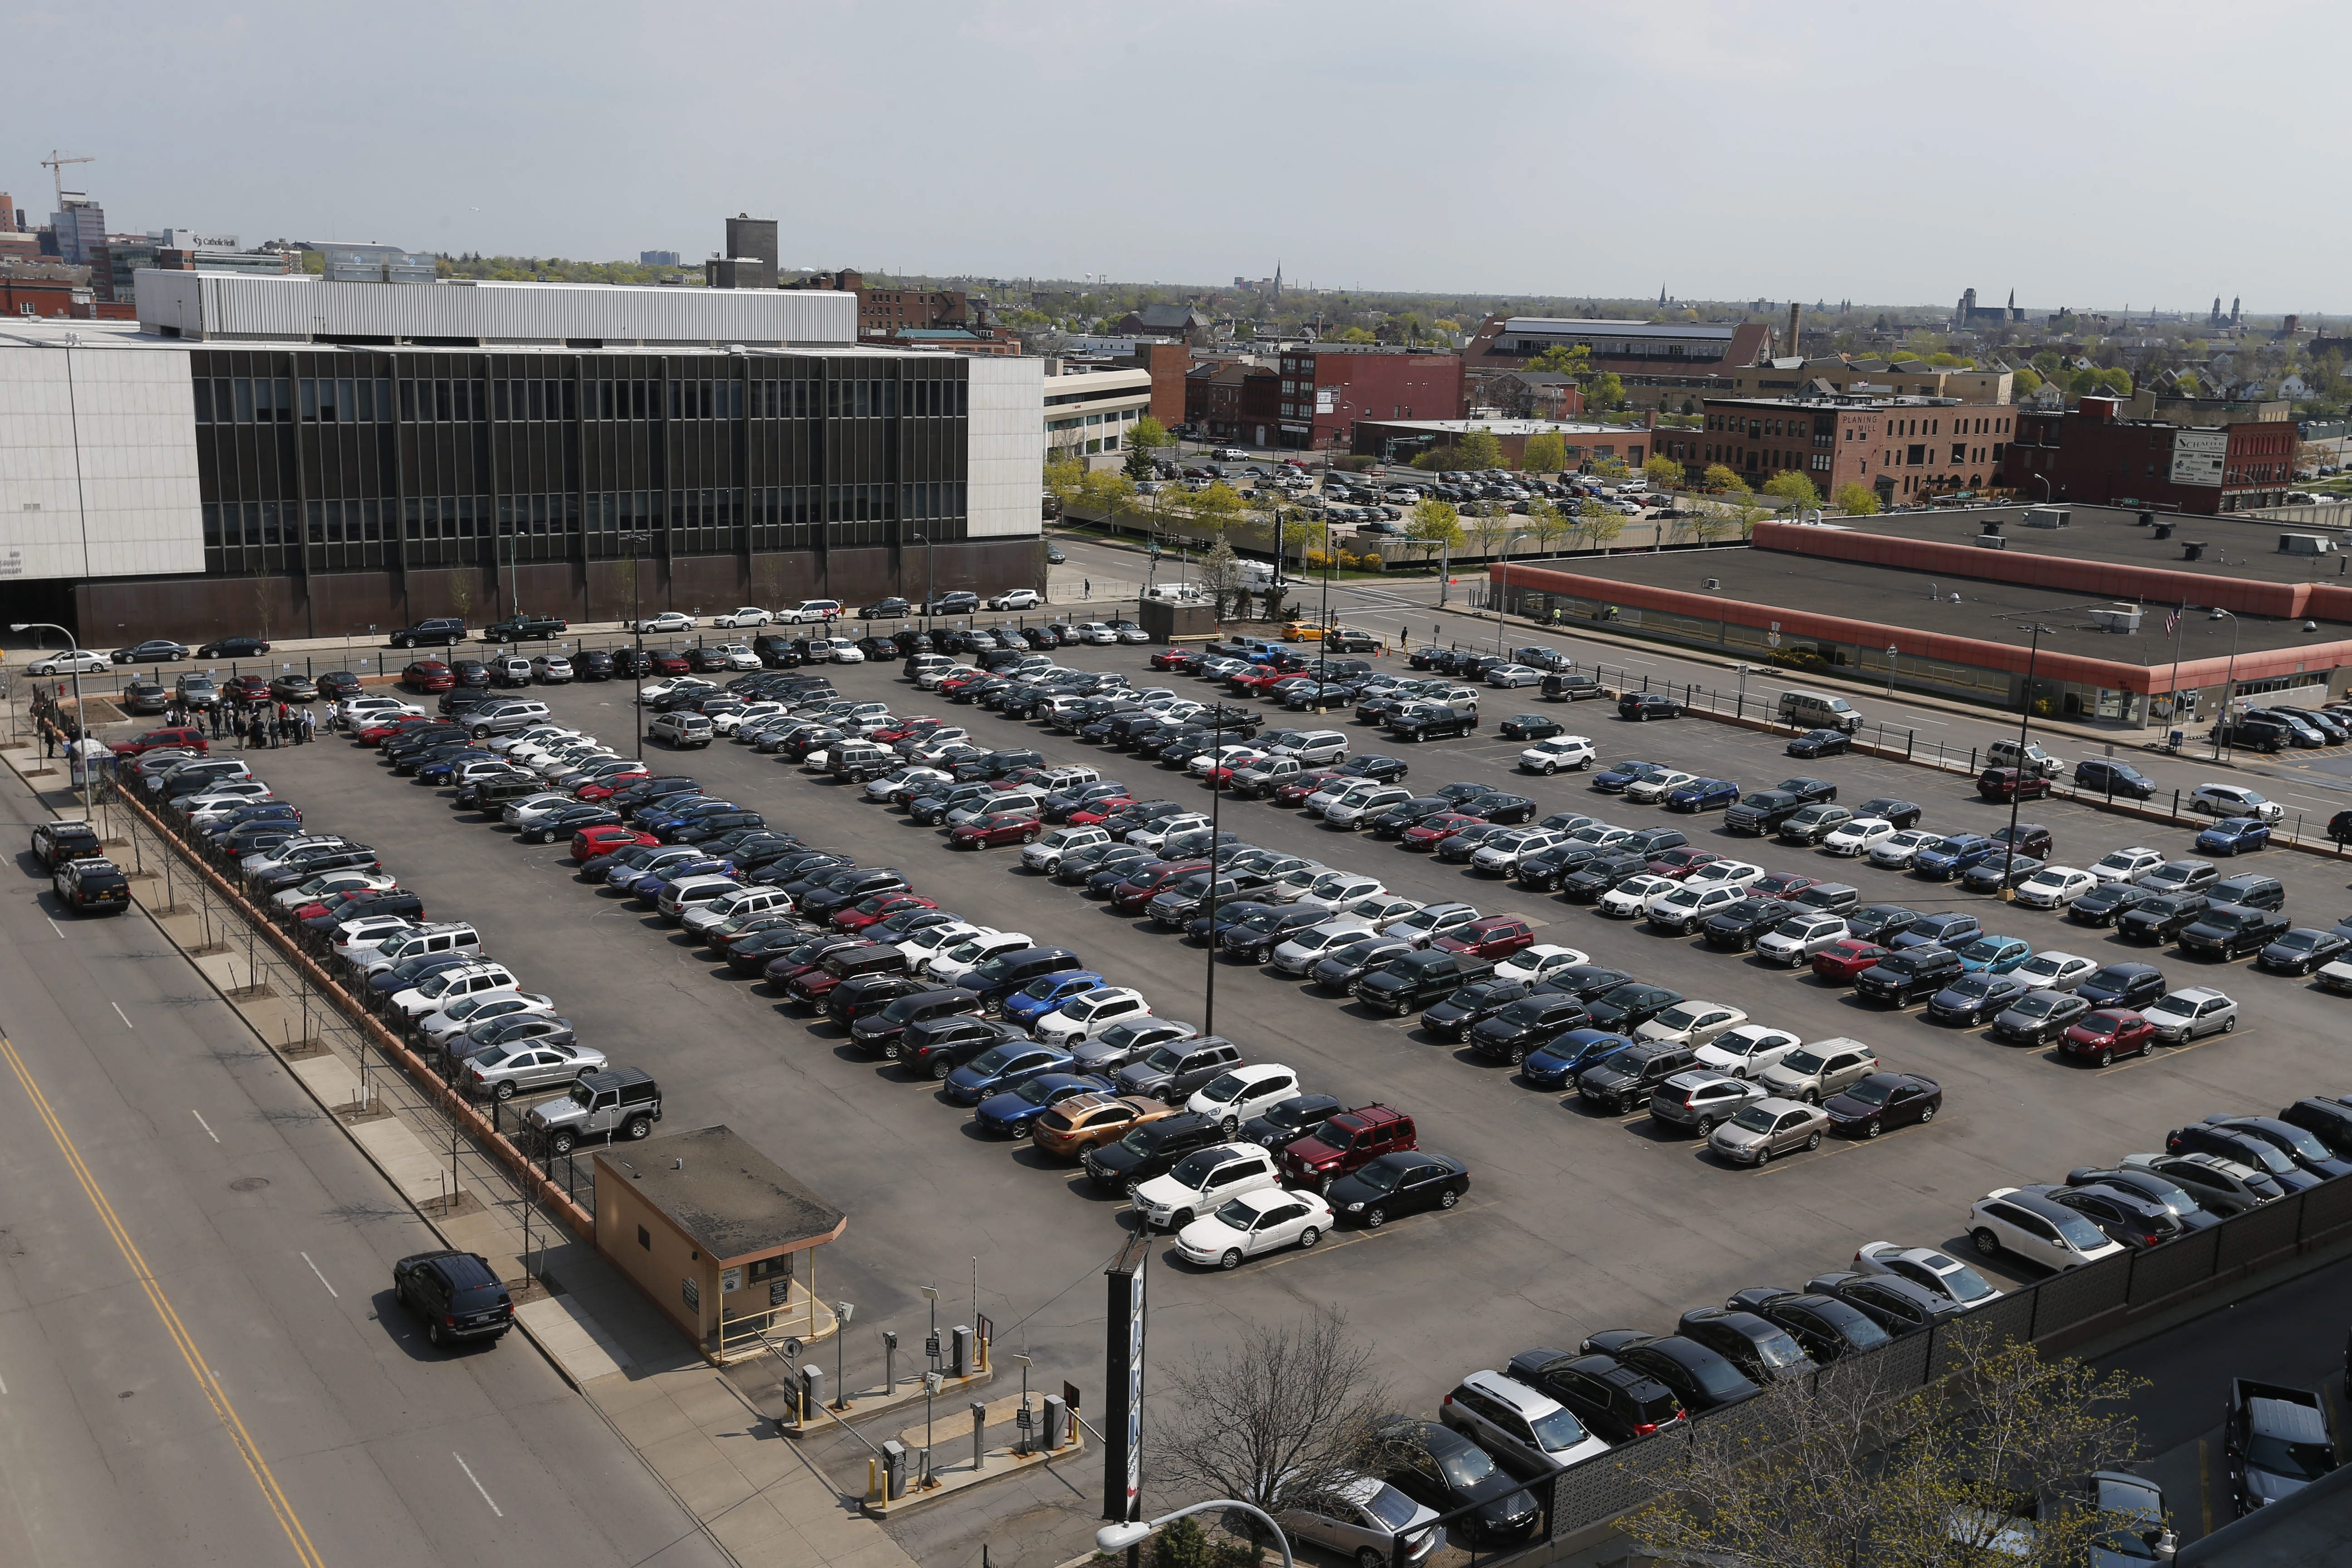 The parking lot on the 200 block of Ellicott Street where the city plans to get a grocery store, condominiums and a parking ramp on a vacant downtown parking lot at 201 Ellicott St. that will be developed.